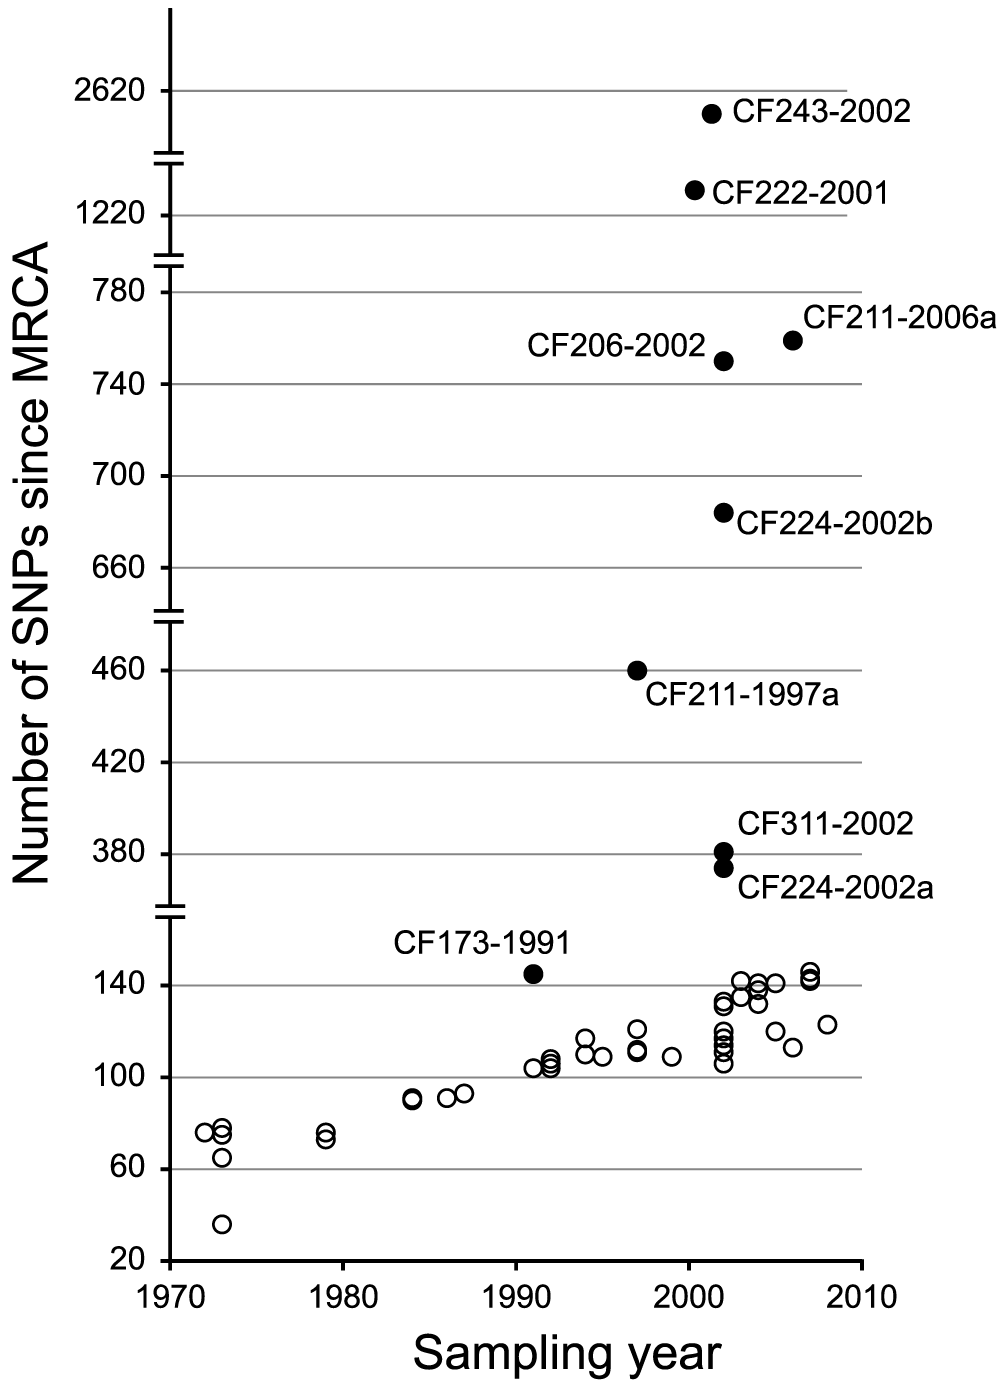 Total number of SNPs accumulated in each DK2 isolate.